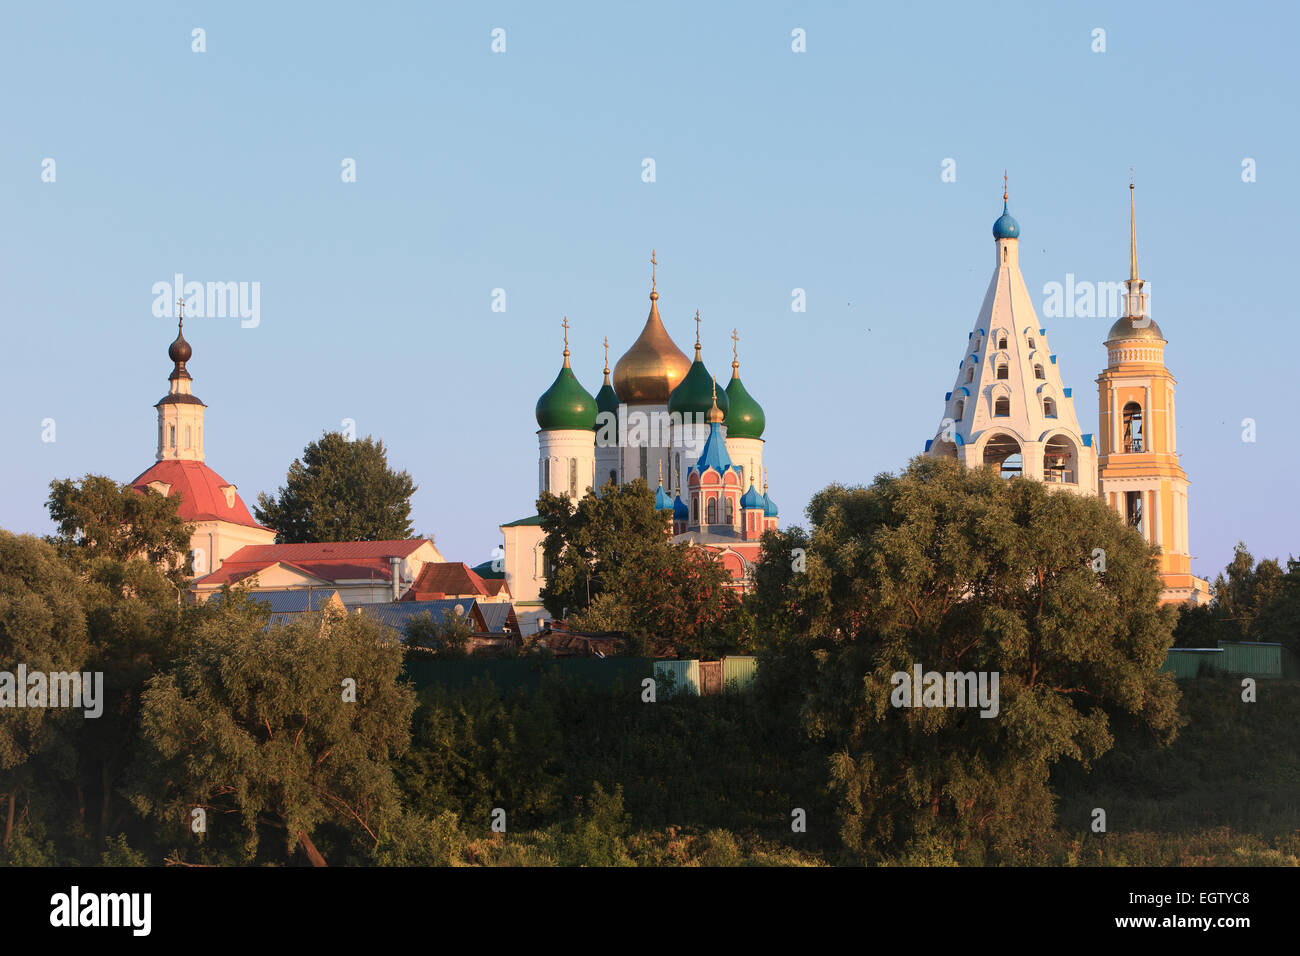 The Kremlin of Kolomna, Russia on an early summer morning Stock Photo